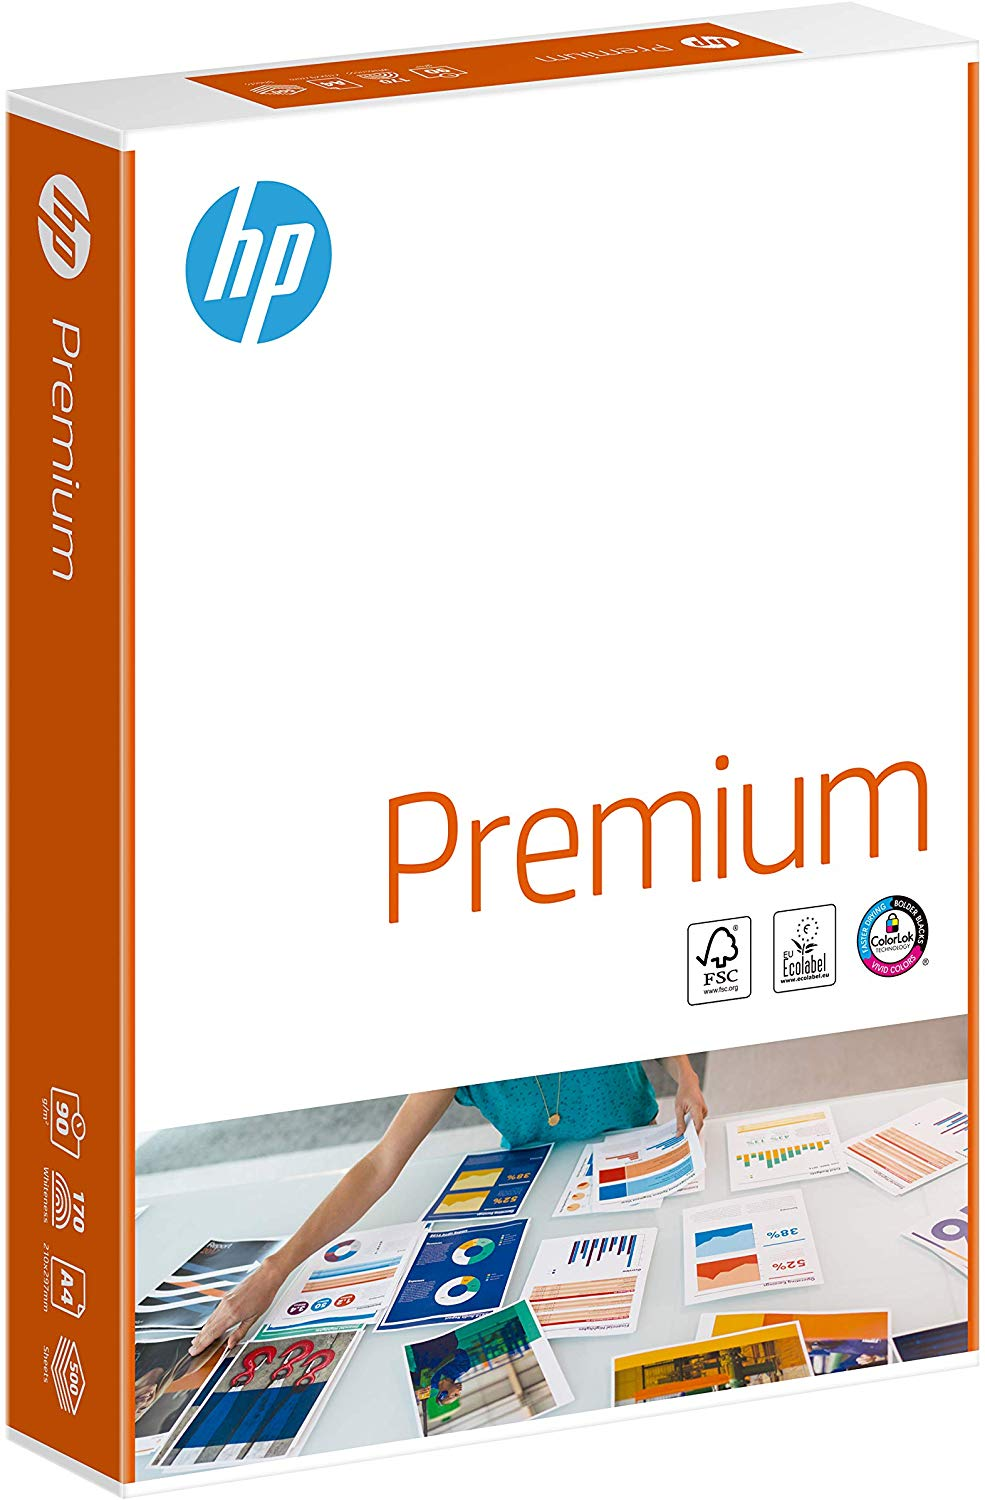 45% off HP Papers CHP852 A4 90 gsm FSC Premium Paper